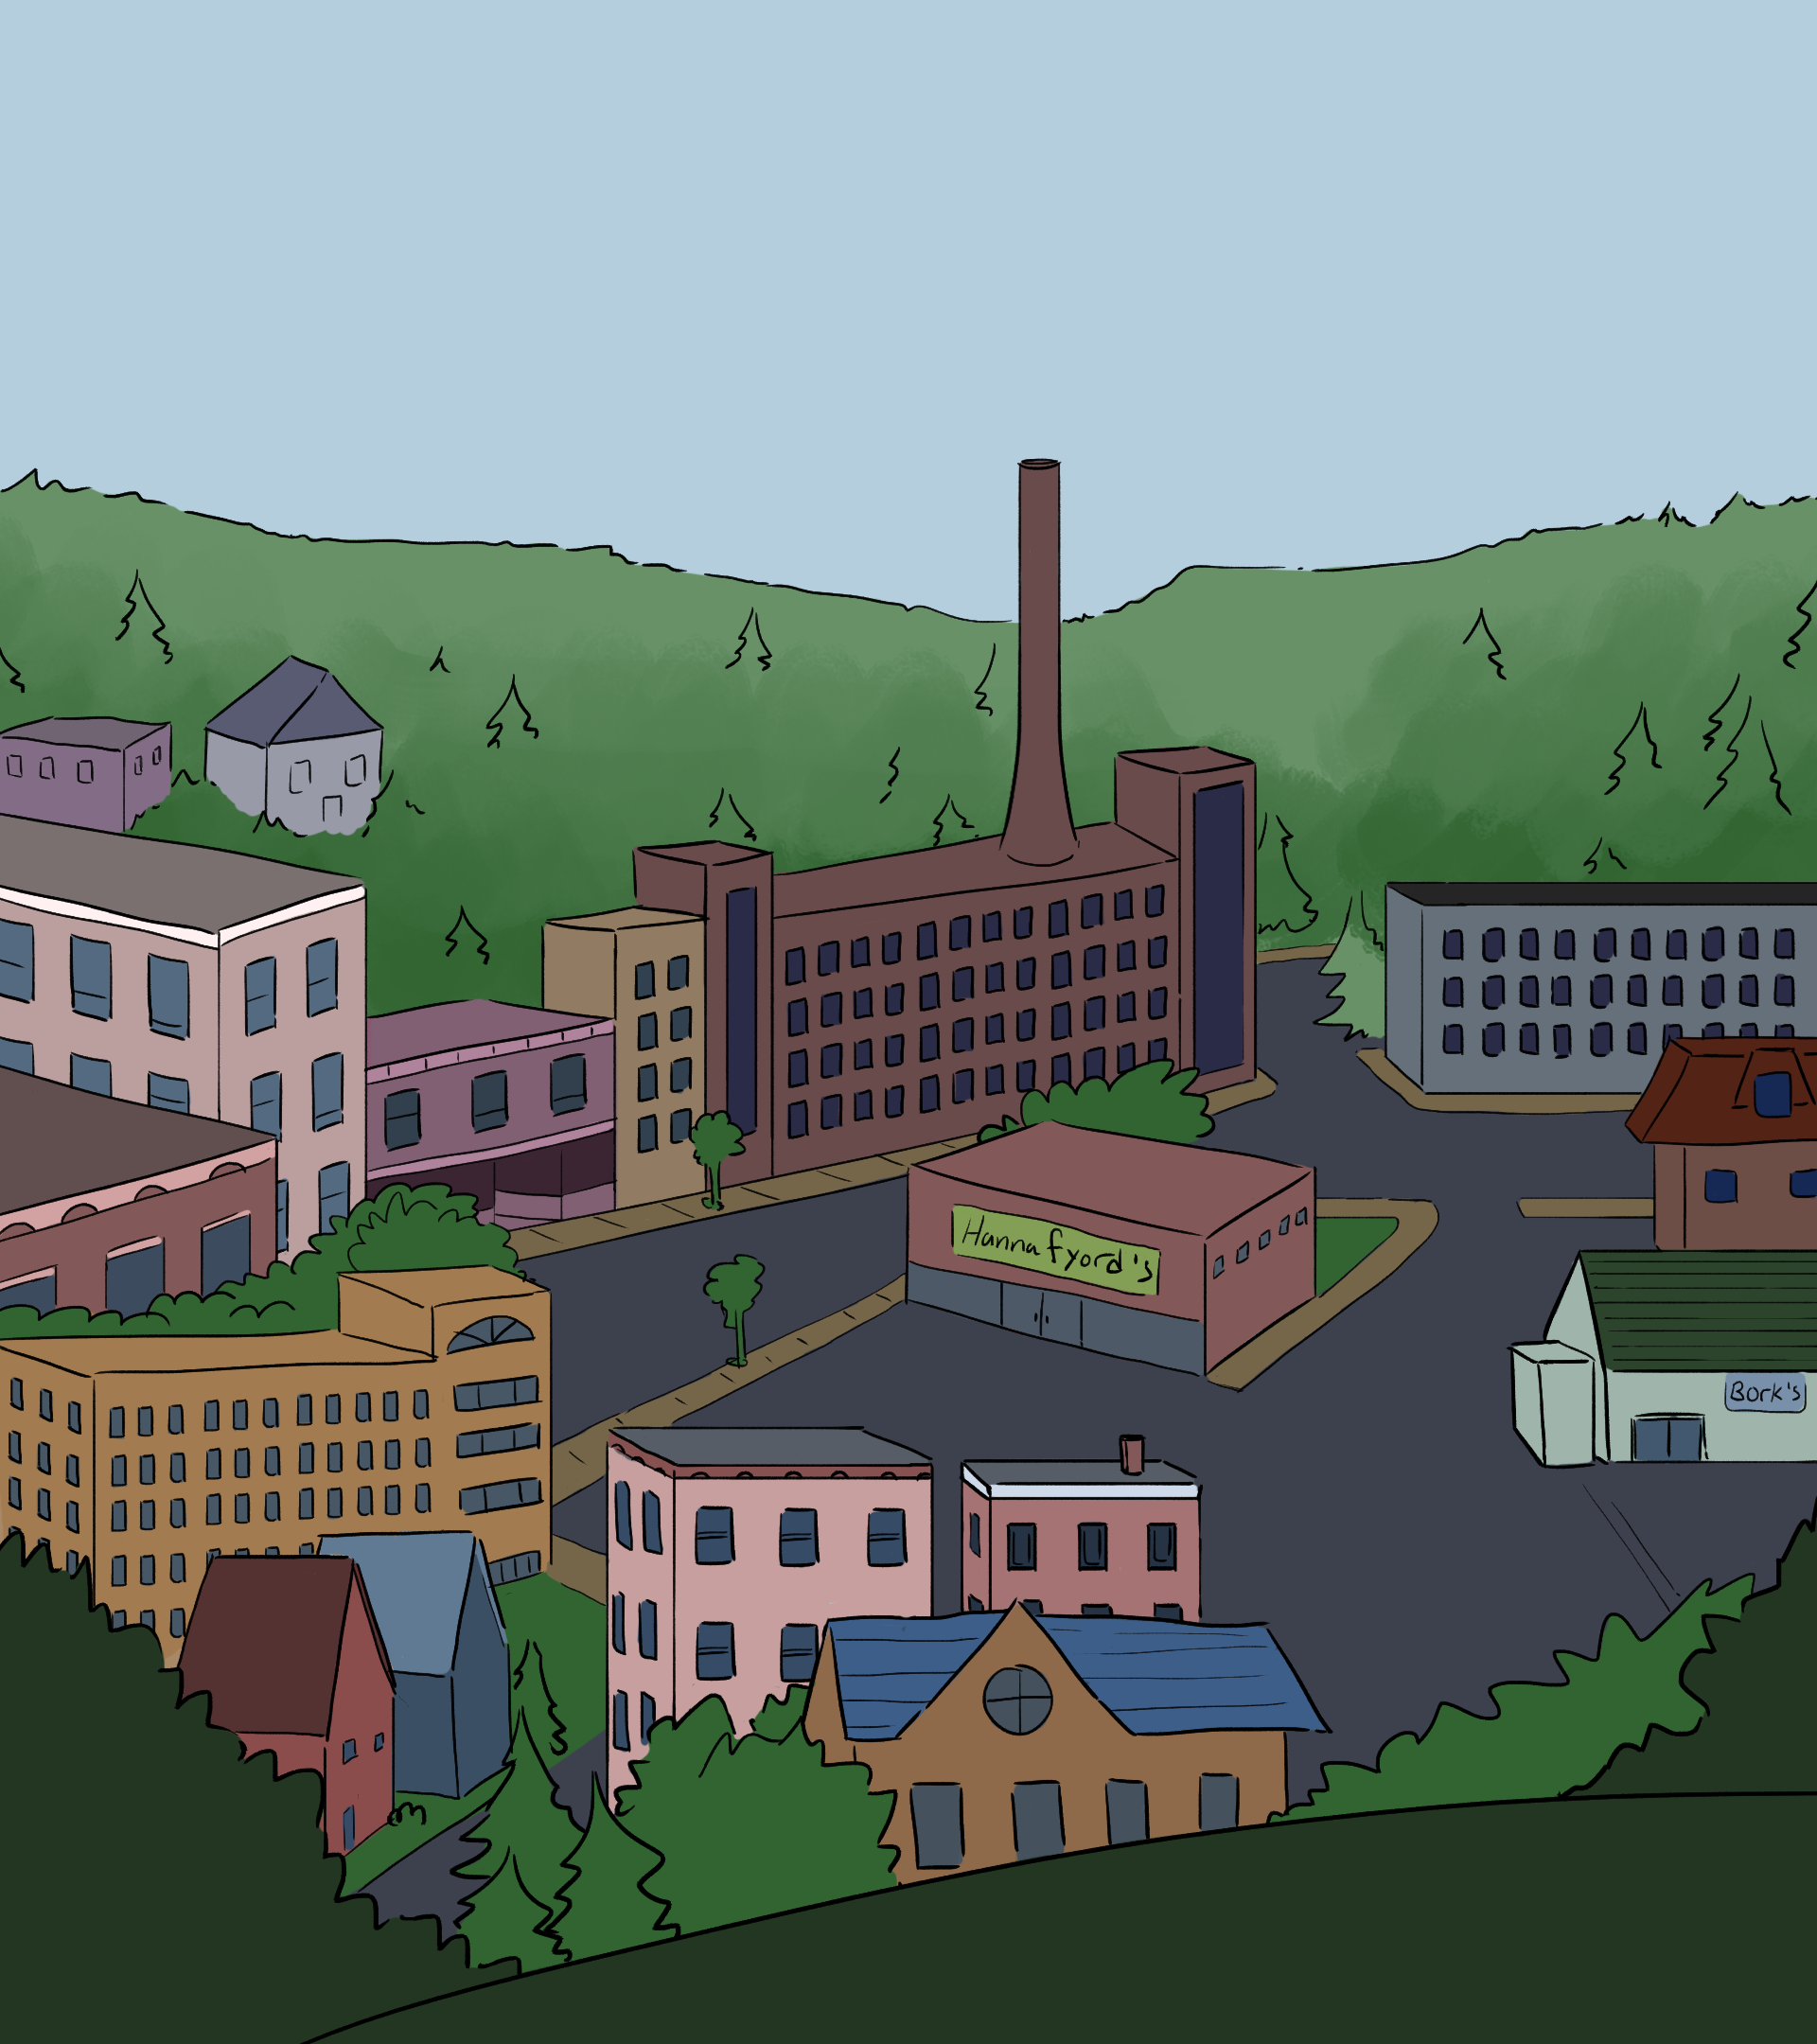 A city with lots of mills and pine trees.